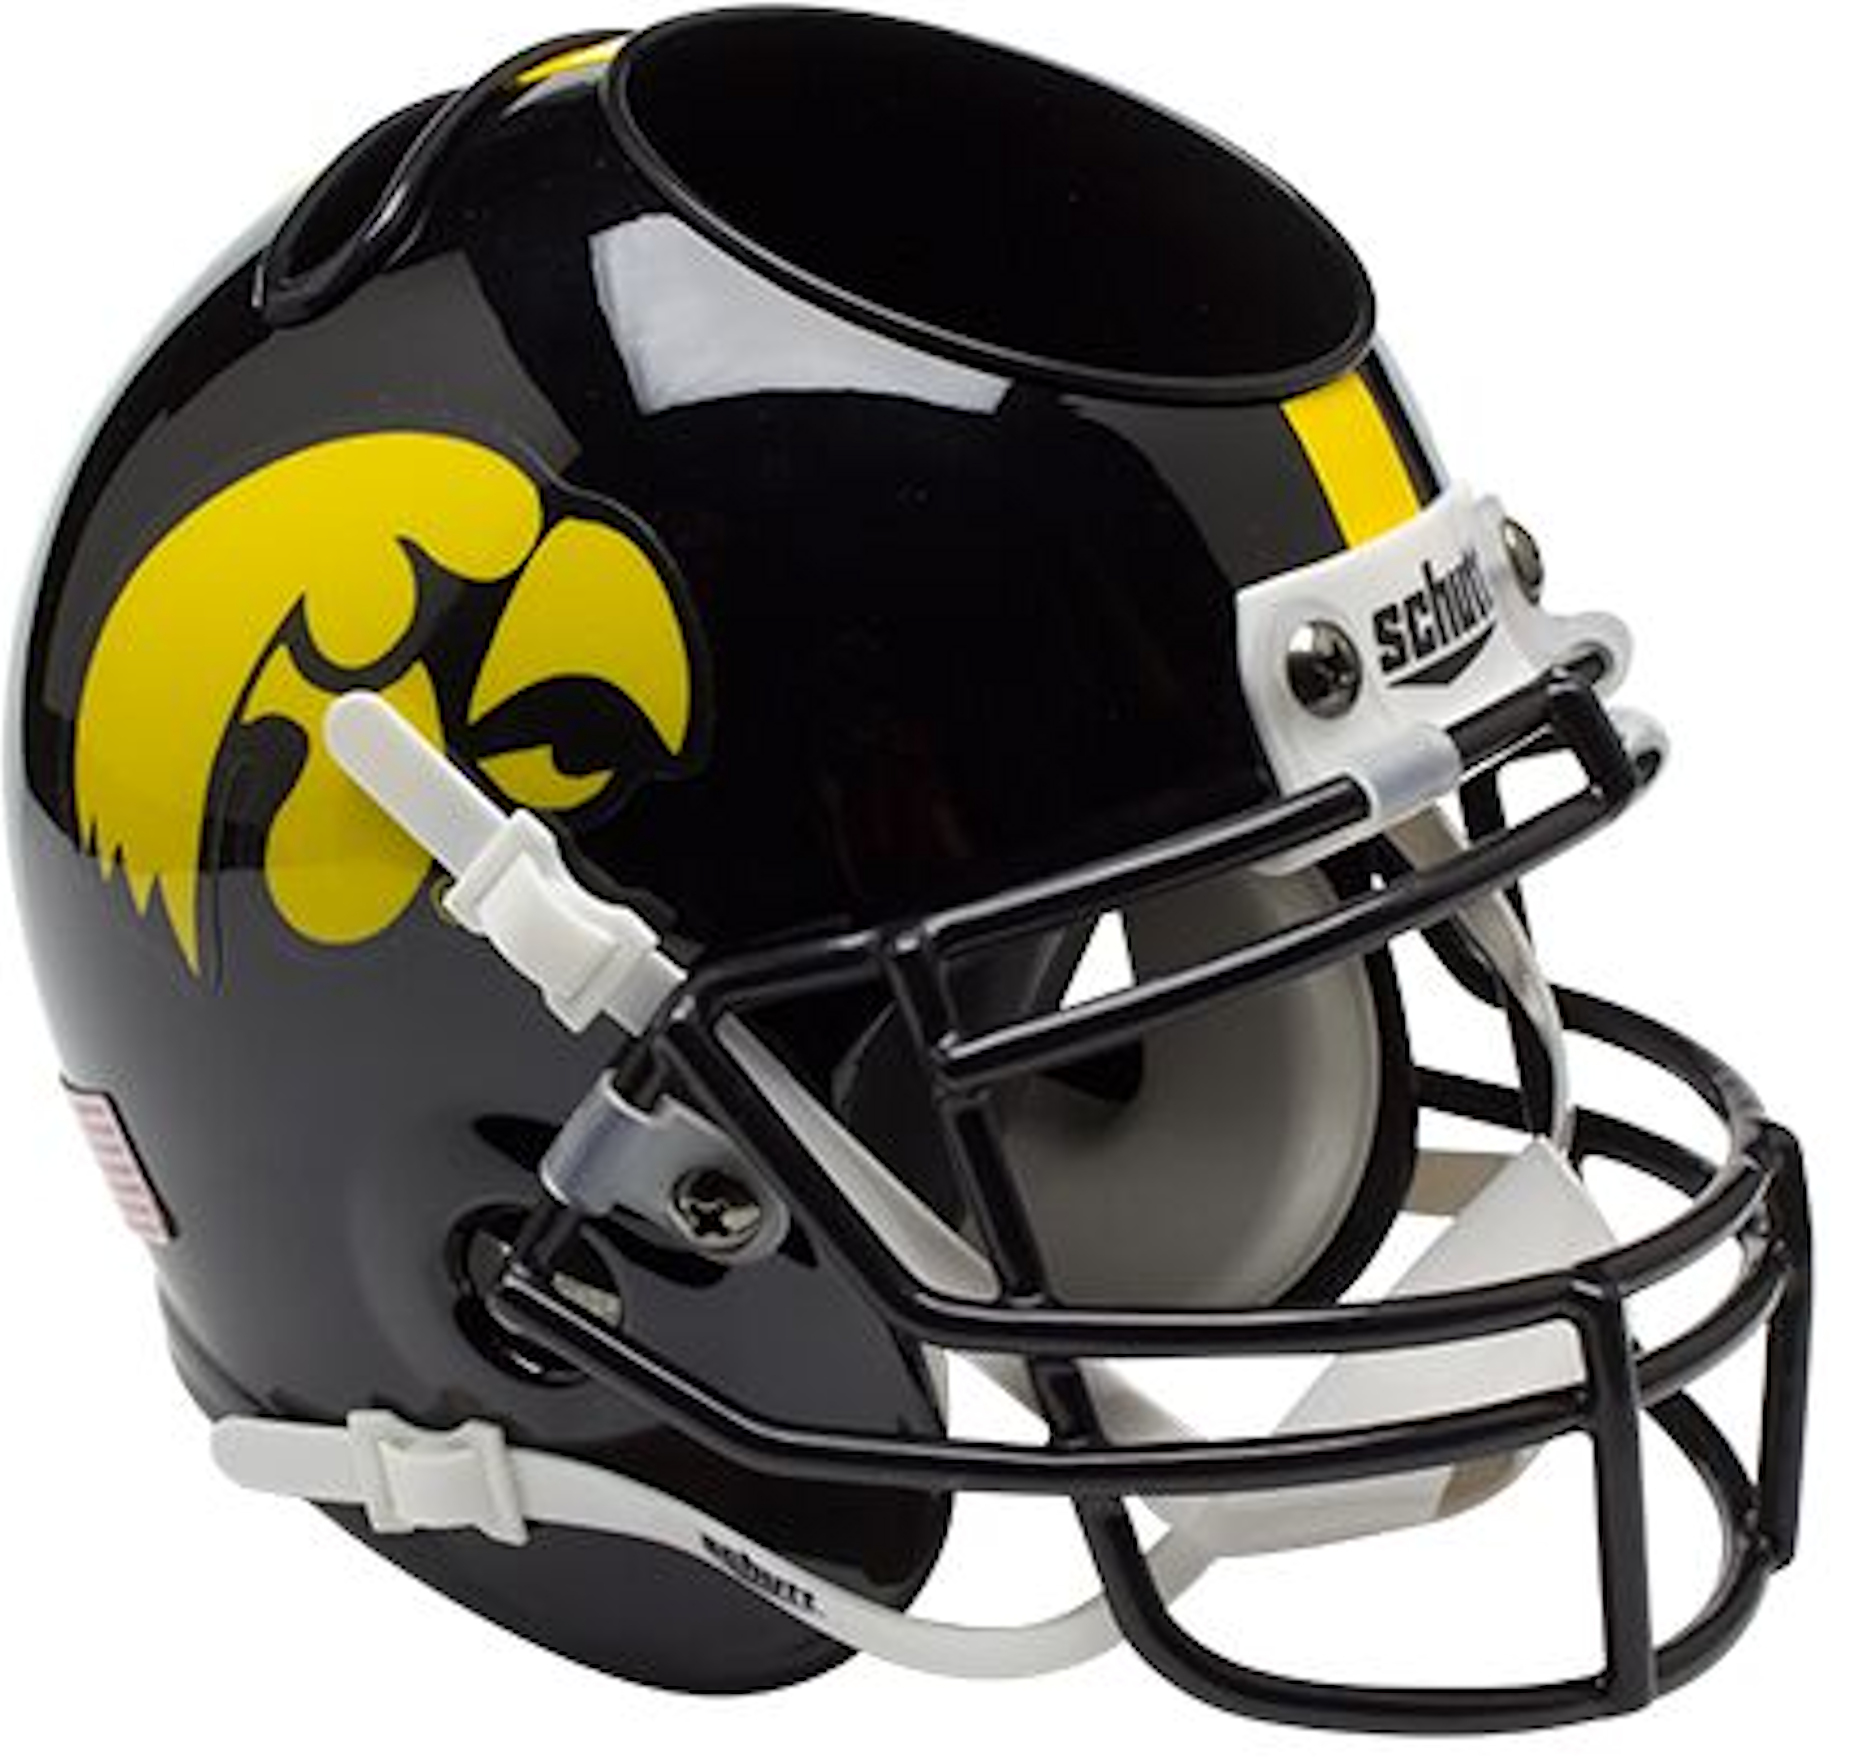 Iowa Hawkeyes Miniature Football Helmet Desk Caddy